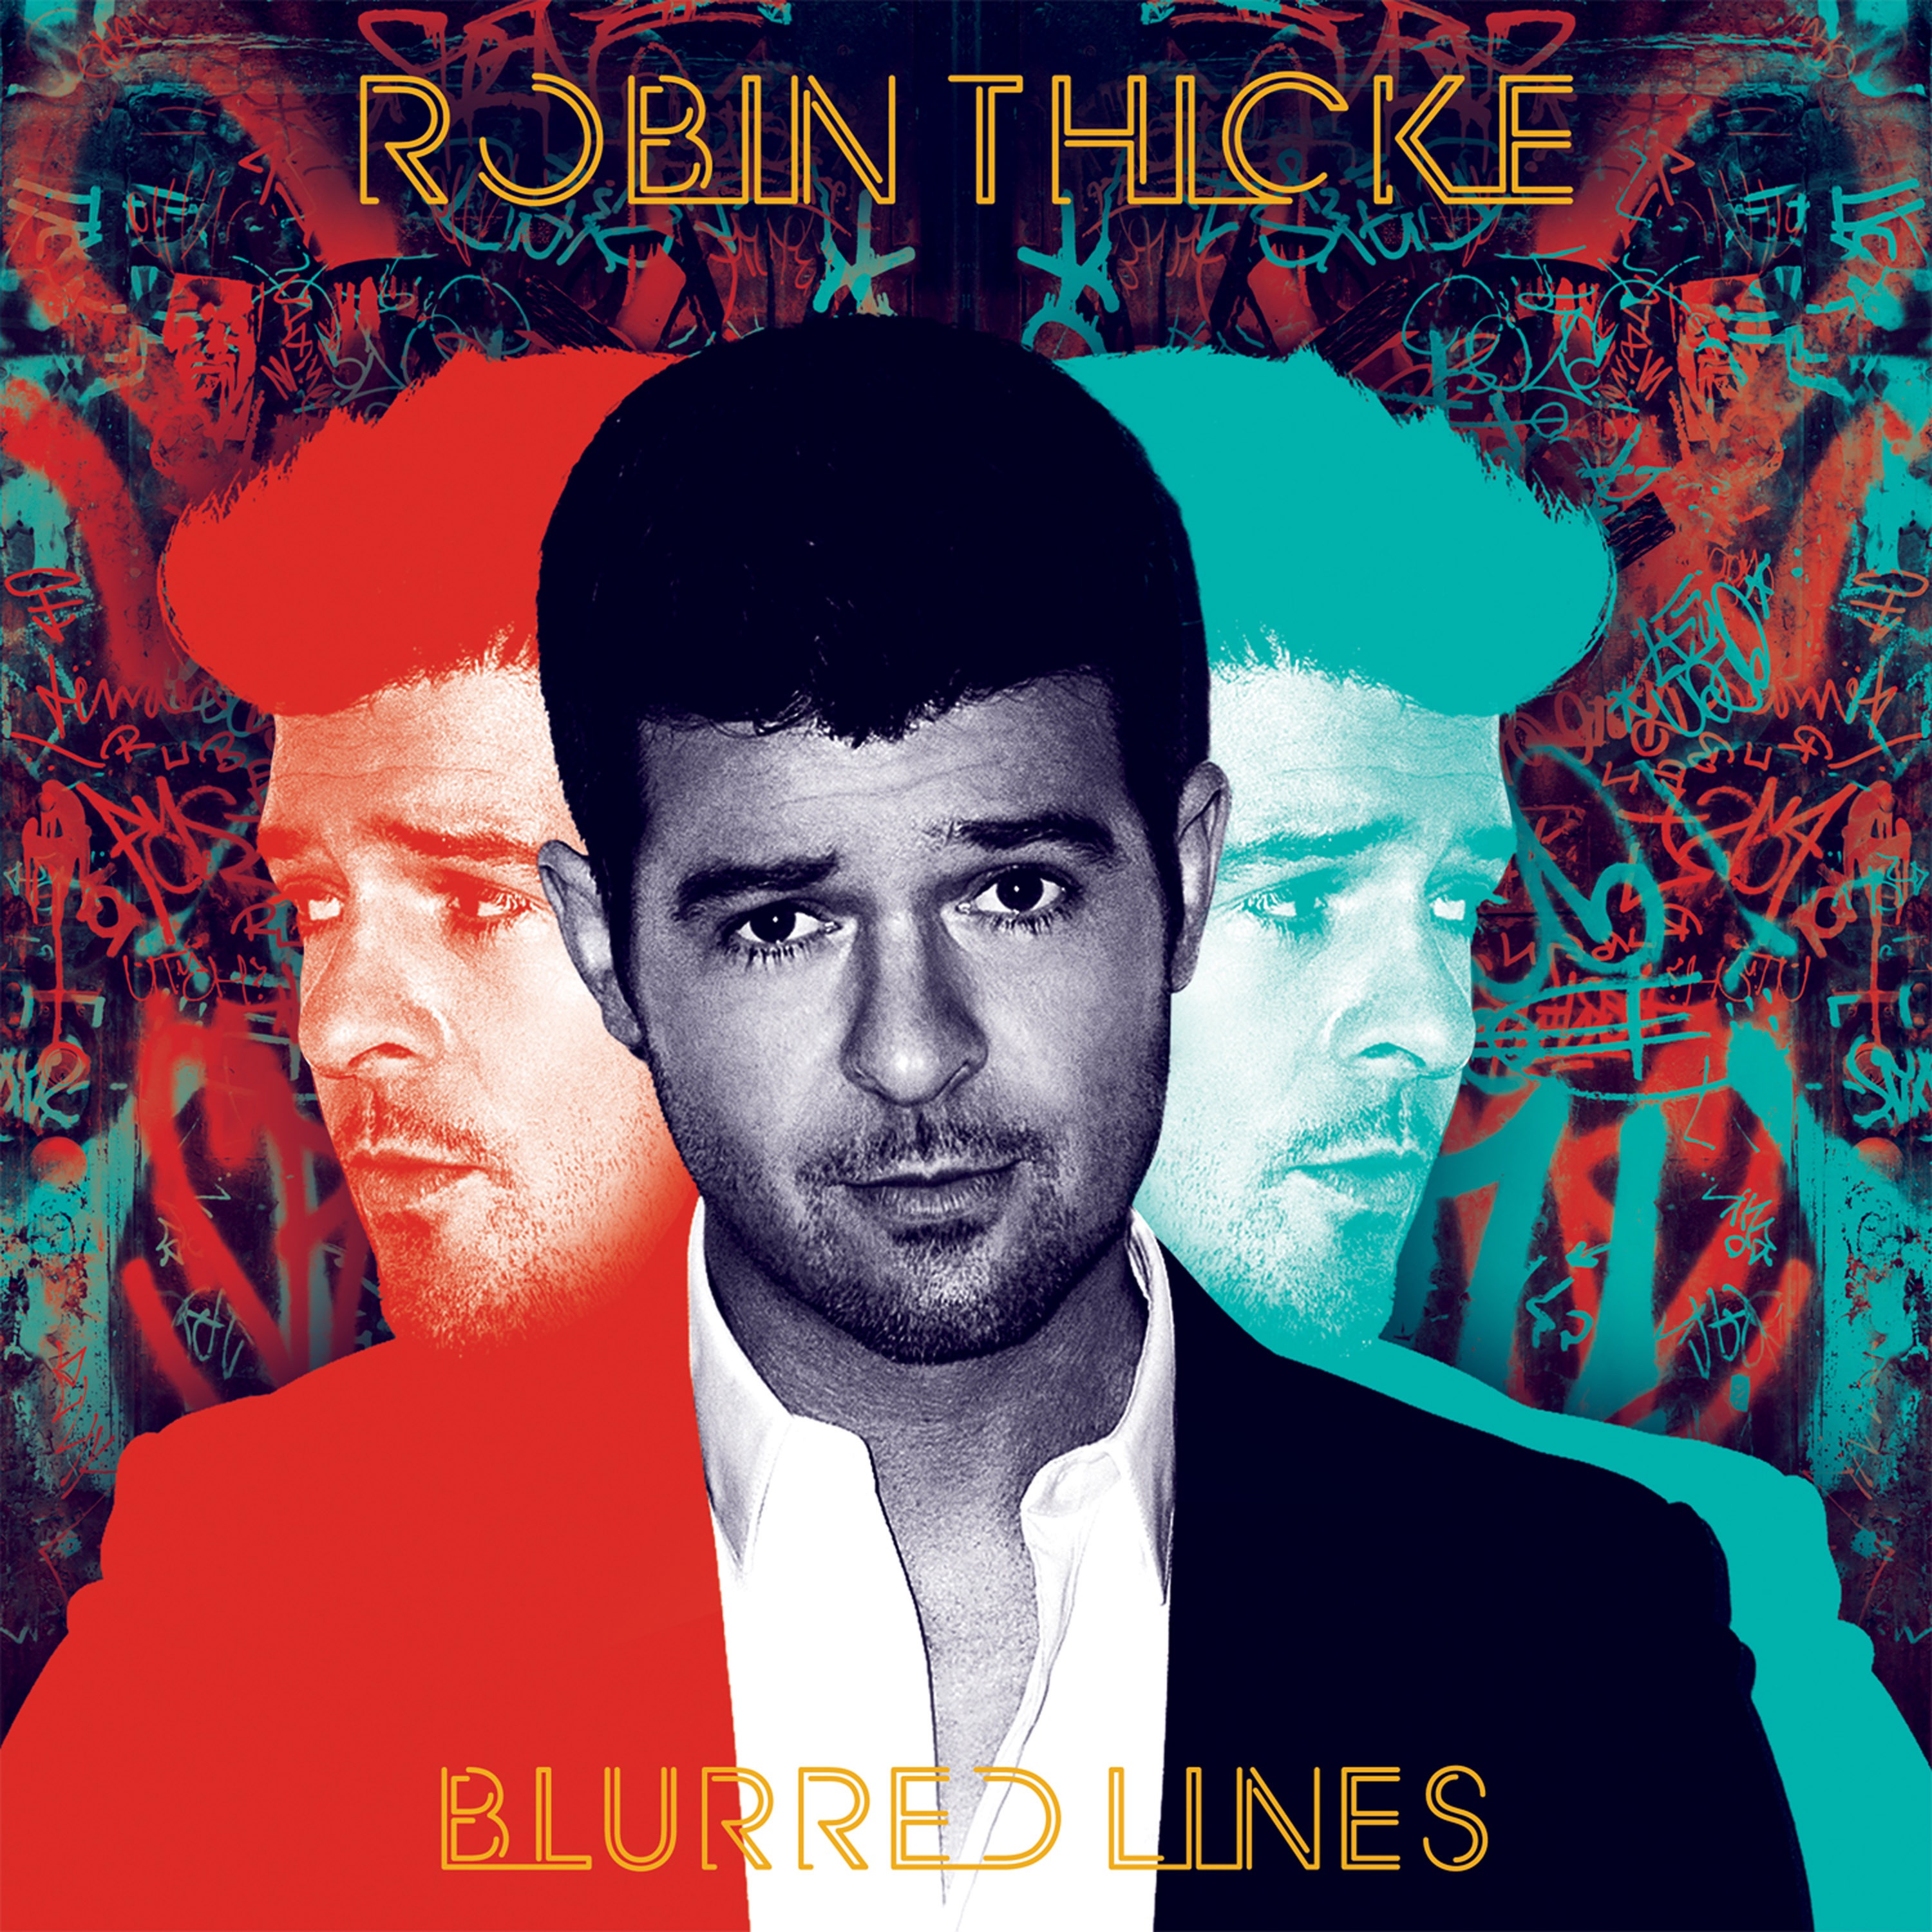 Naked dick thicke Robin